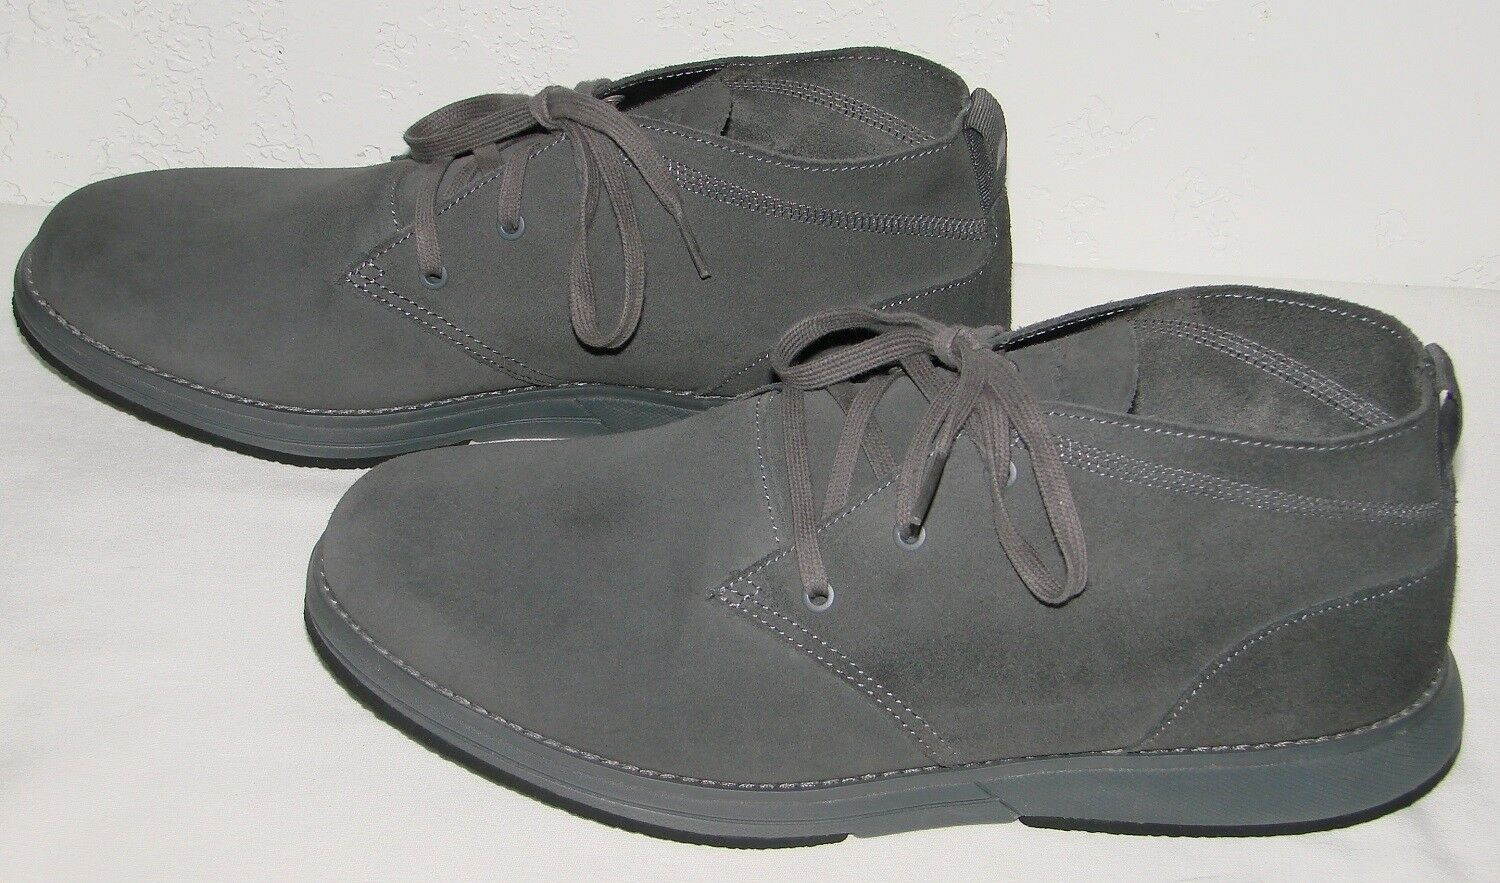 Skechers Mens On the Go Kasual Grey Suede Chukka Boots 53755 Size 10.5